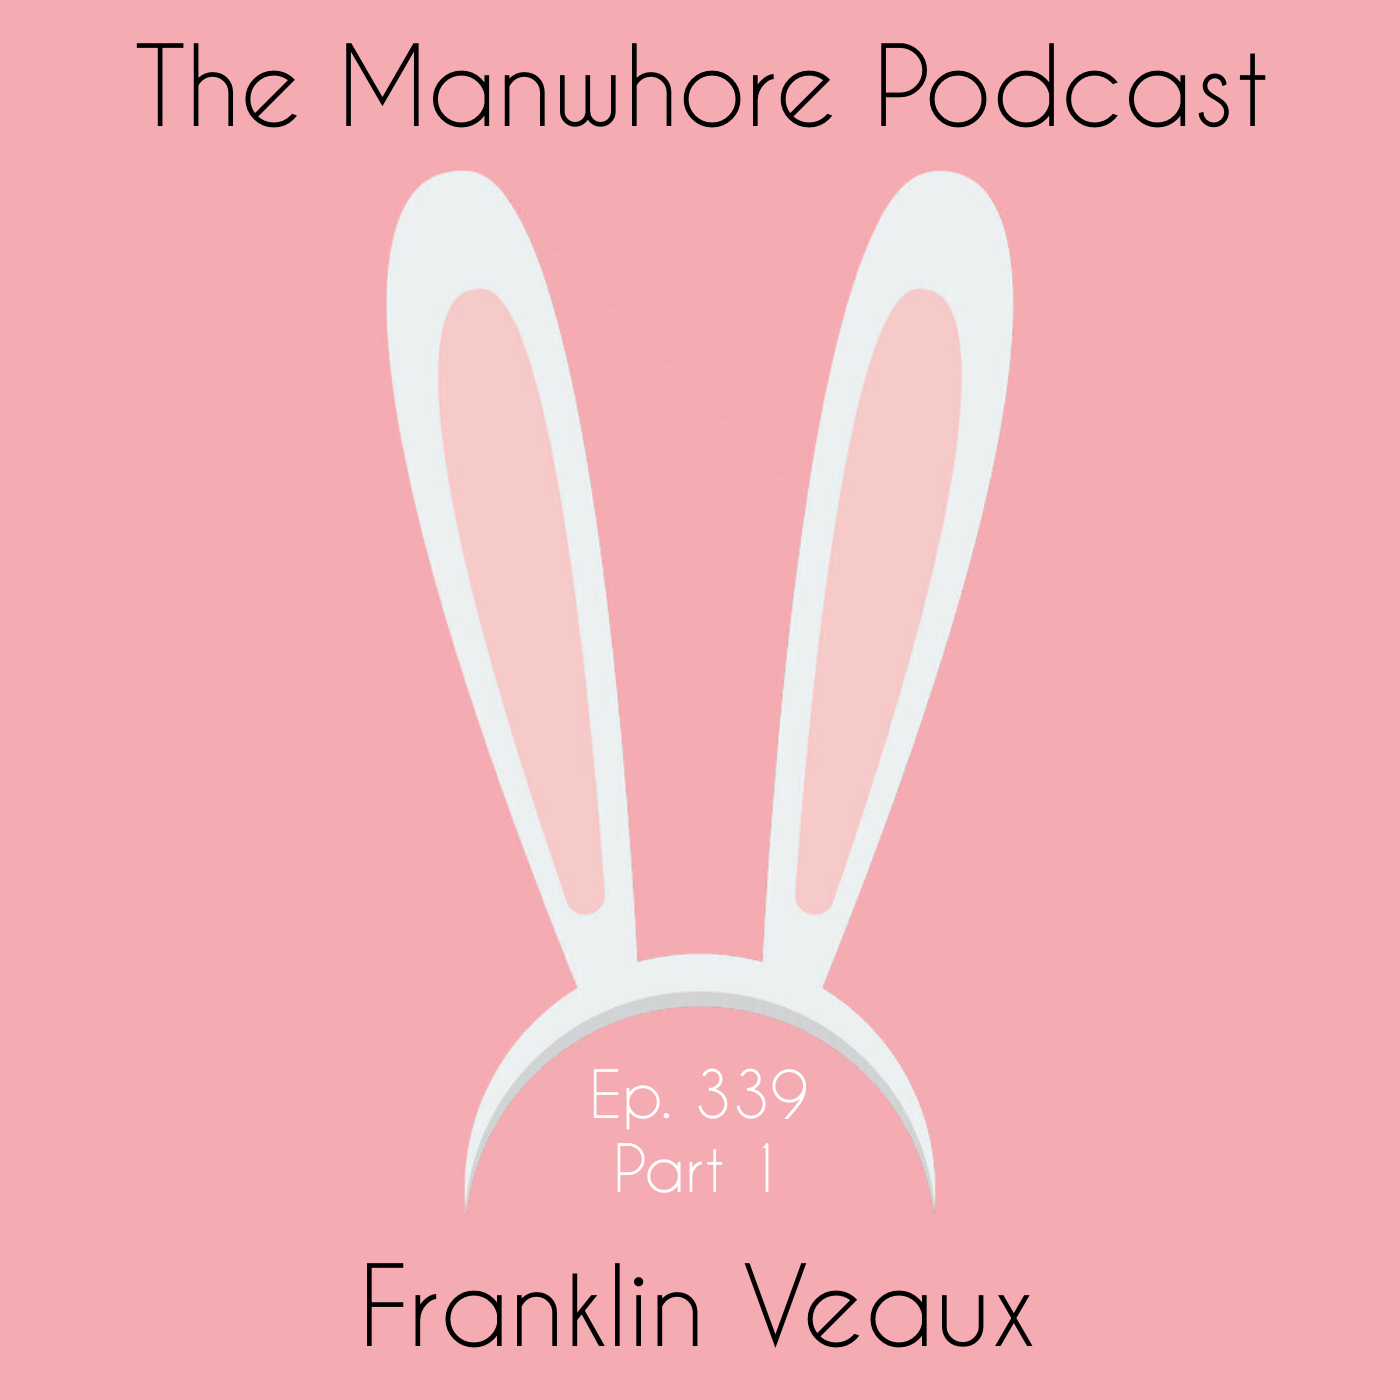 The Manwhore Podcast: A Sex-Positive Quest - Ep. 339: He Said; She Said; They Said with Franklin Veaux (Part 1)